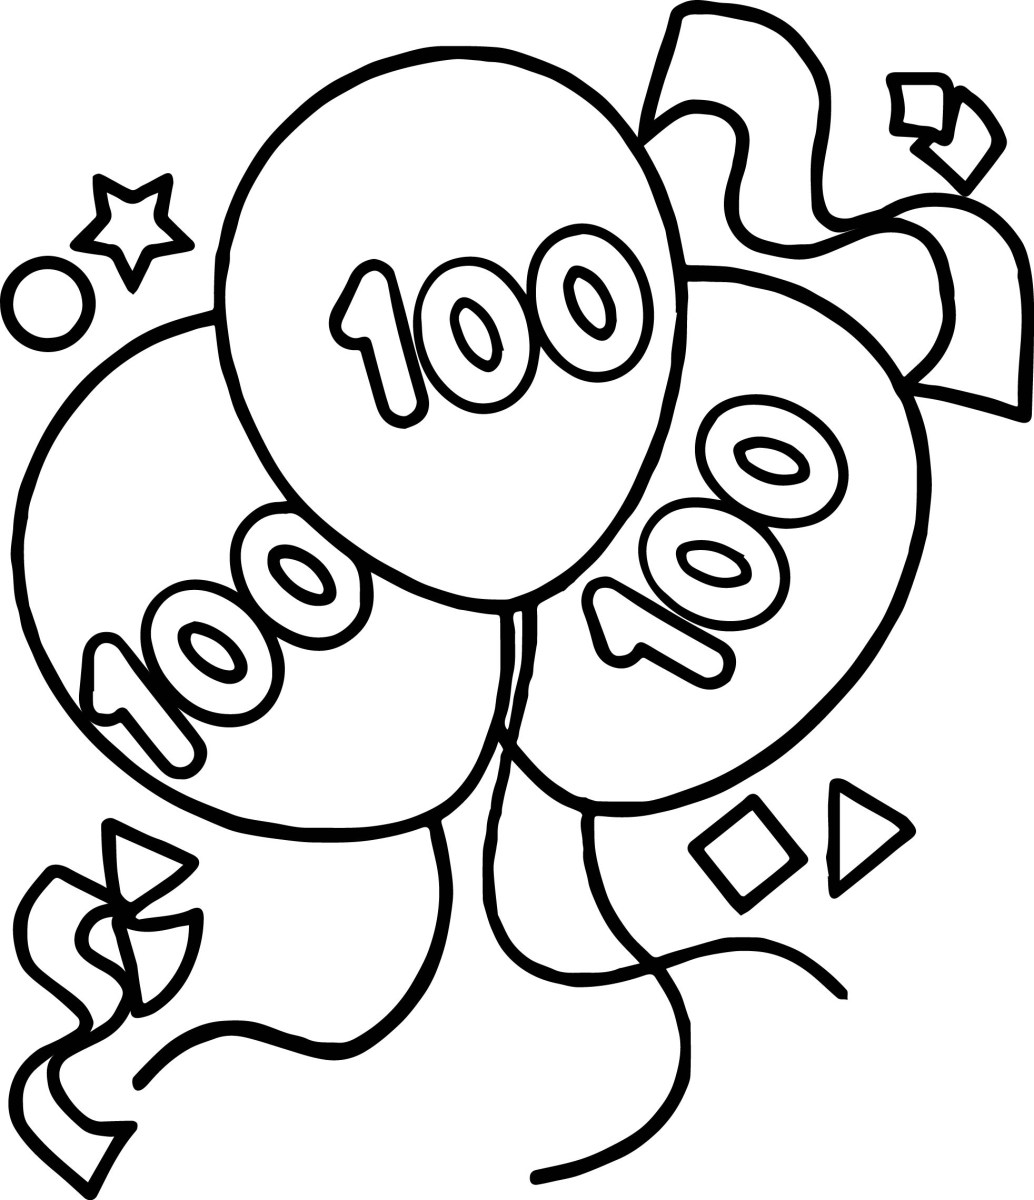 Balloon Coloring Pages Coloring Pages Number And Birthday Balloons Coloring Page For Kids